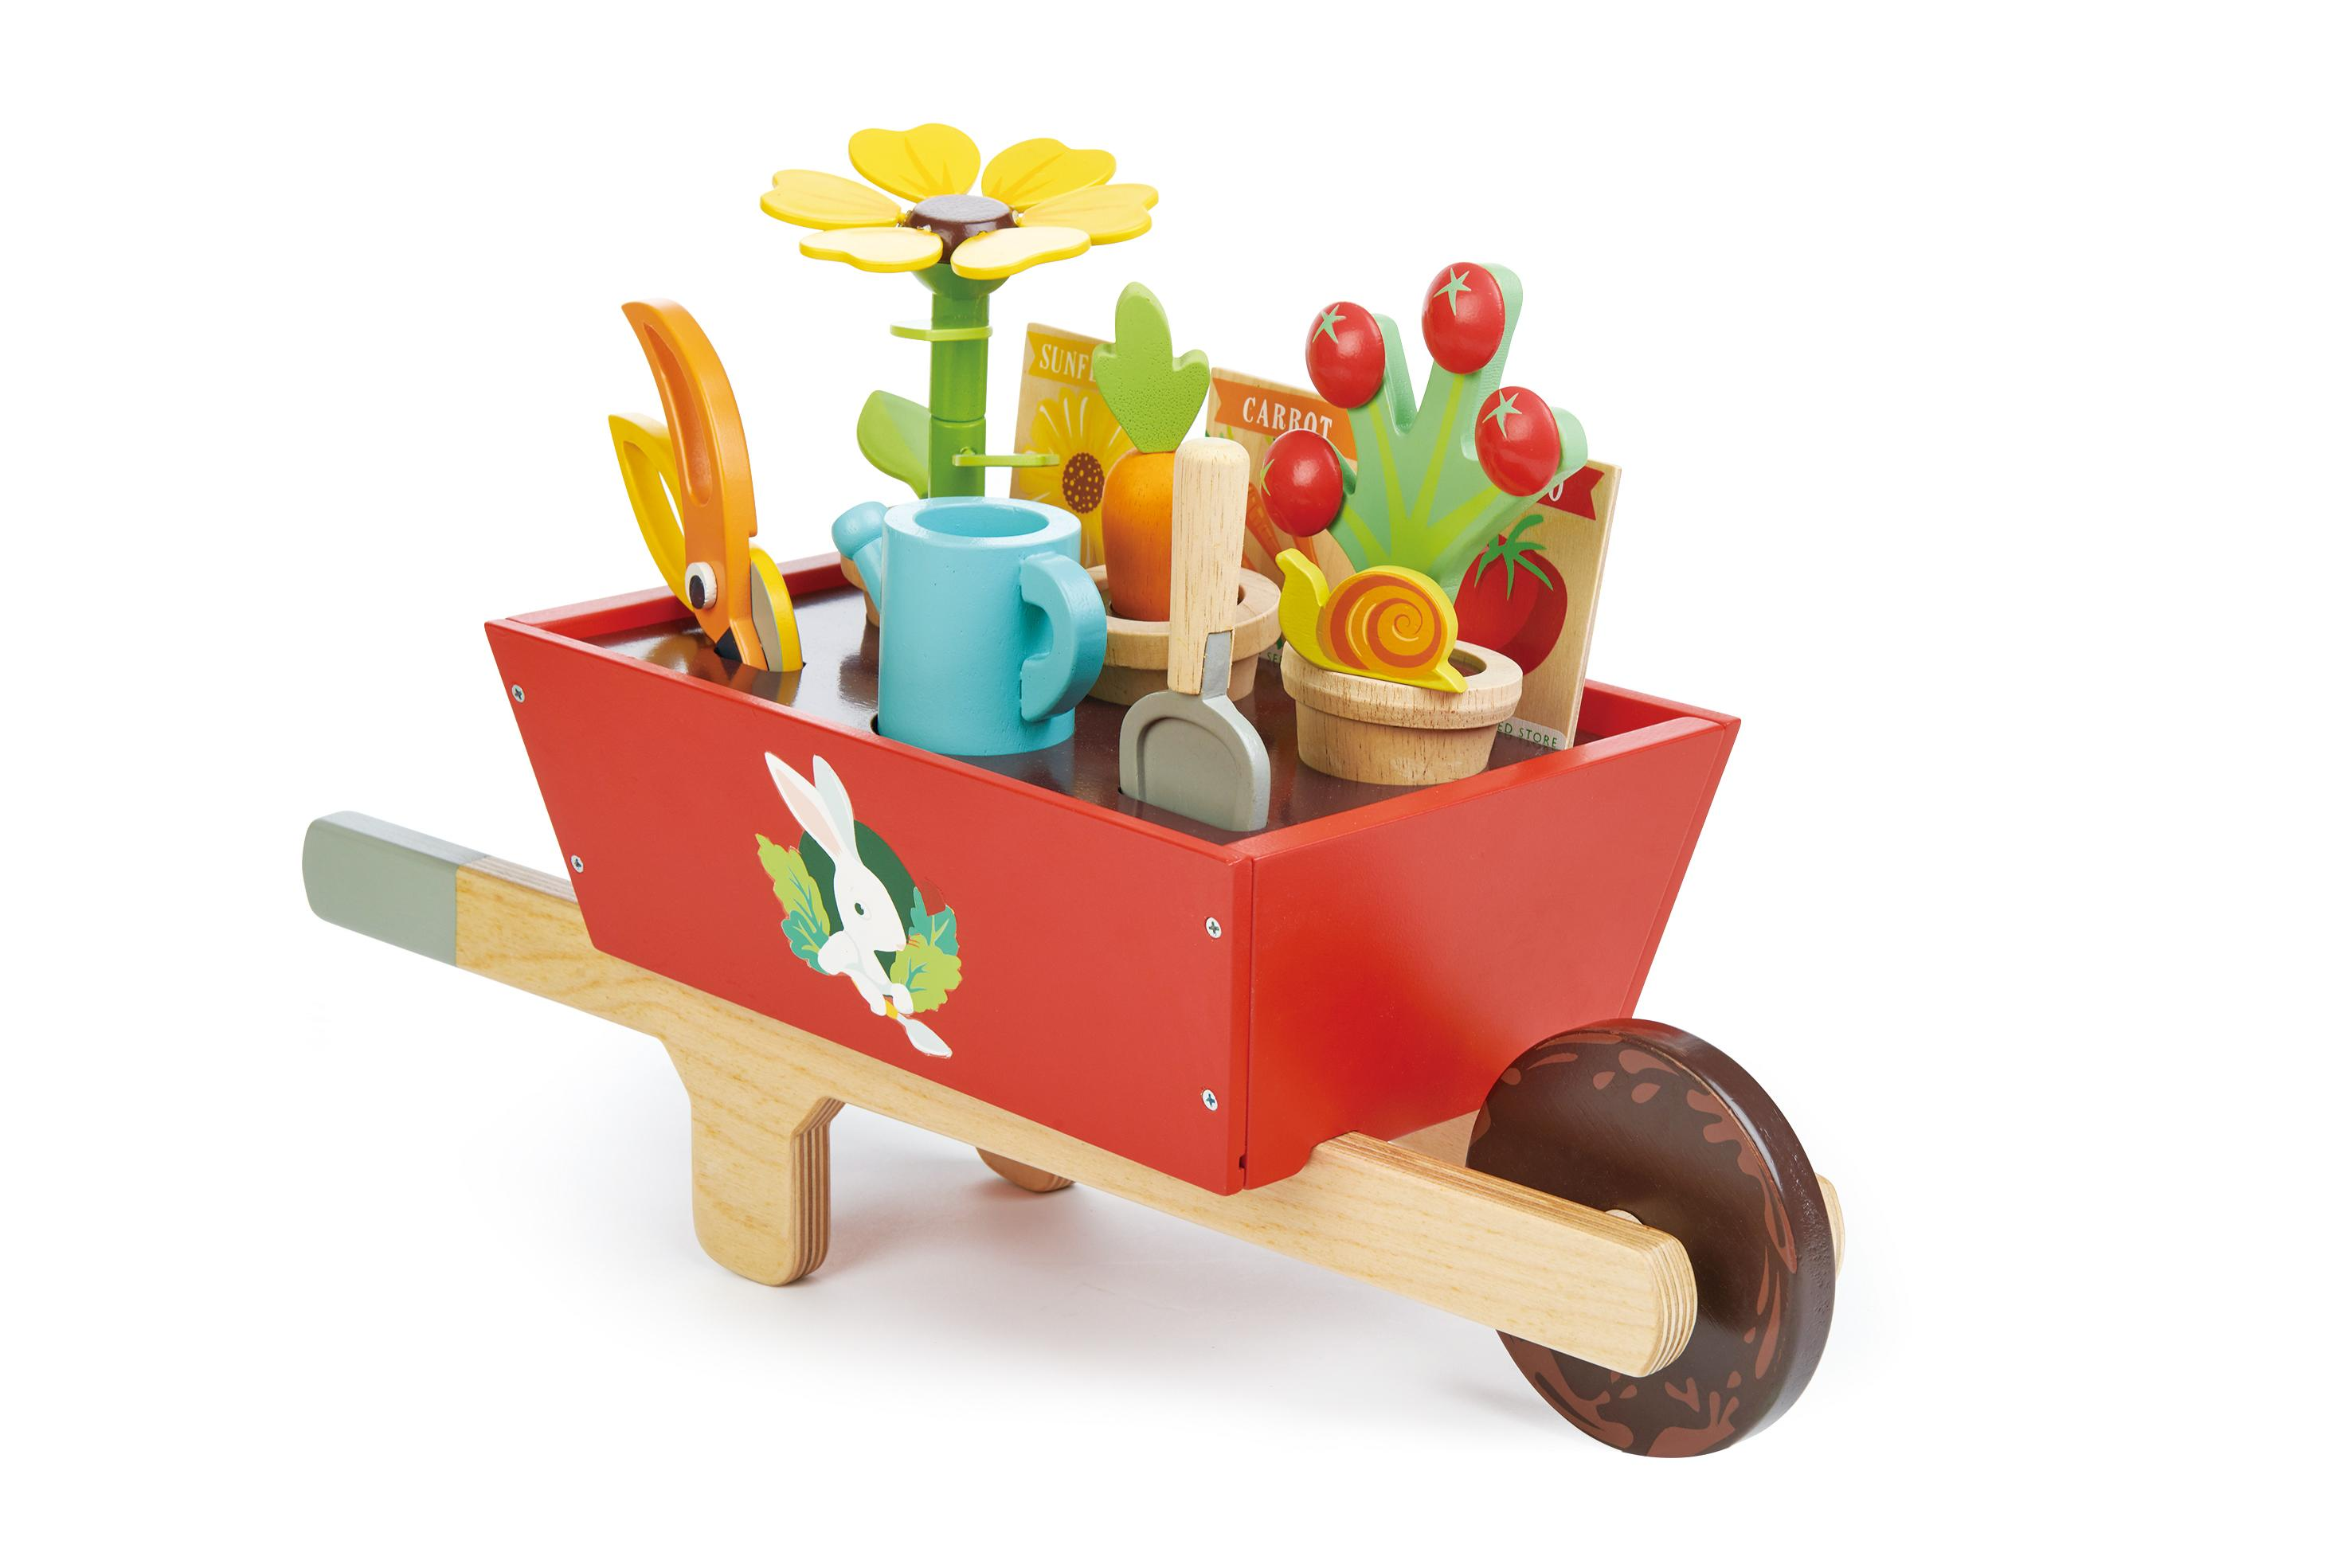 New Wooden Toy Wheelbarrow Set with Removeable Plants, Tools and more